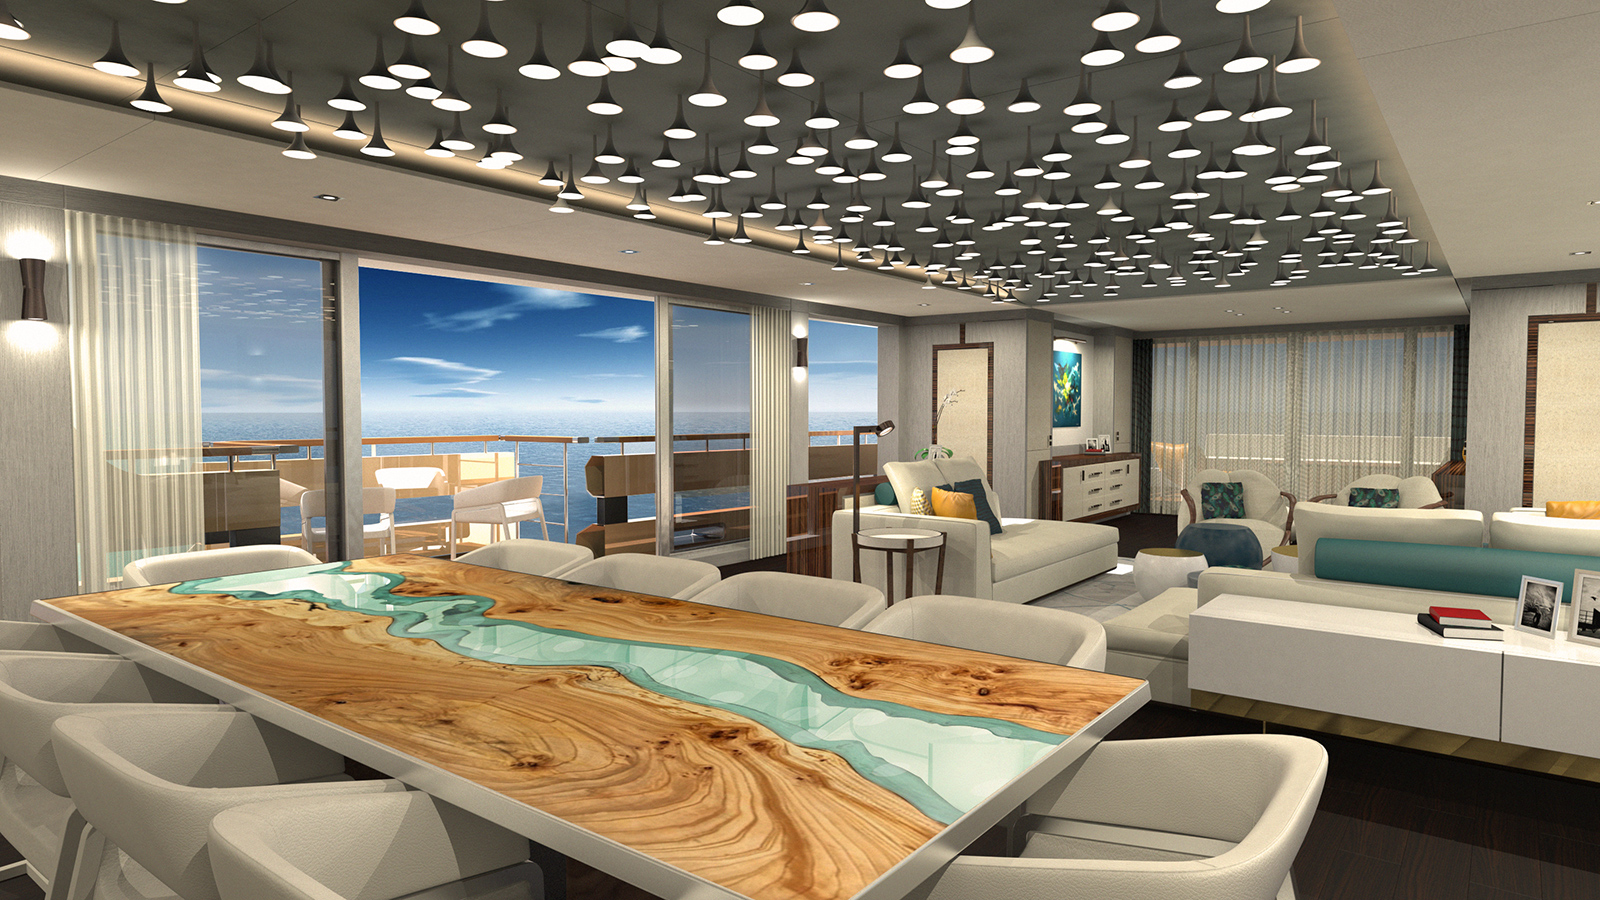 the-dining-area-of-the-couach-3800-lounge-explorer-yacht-concept